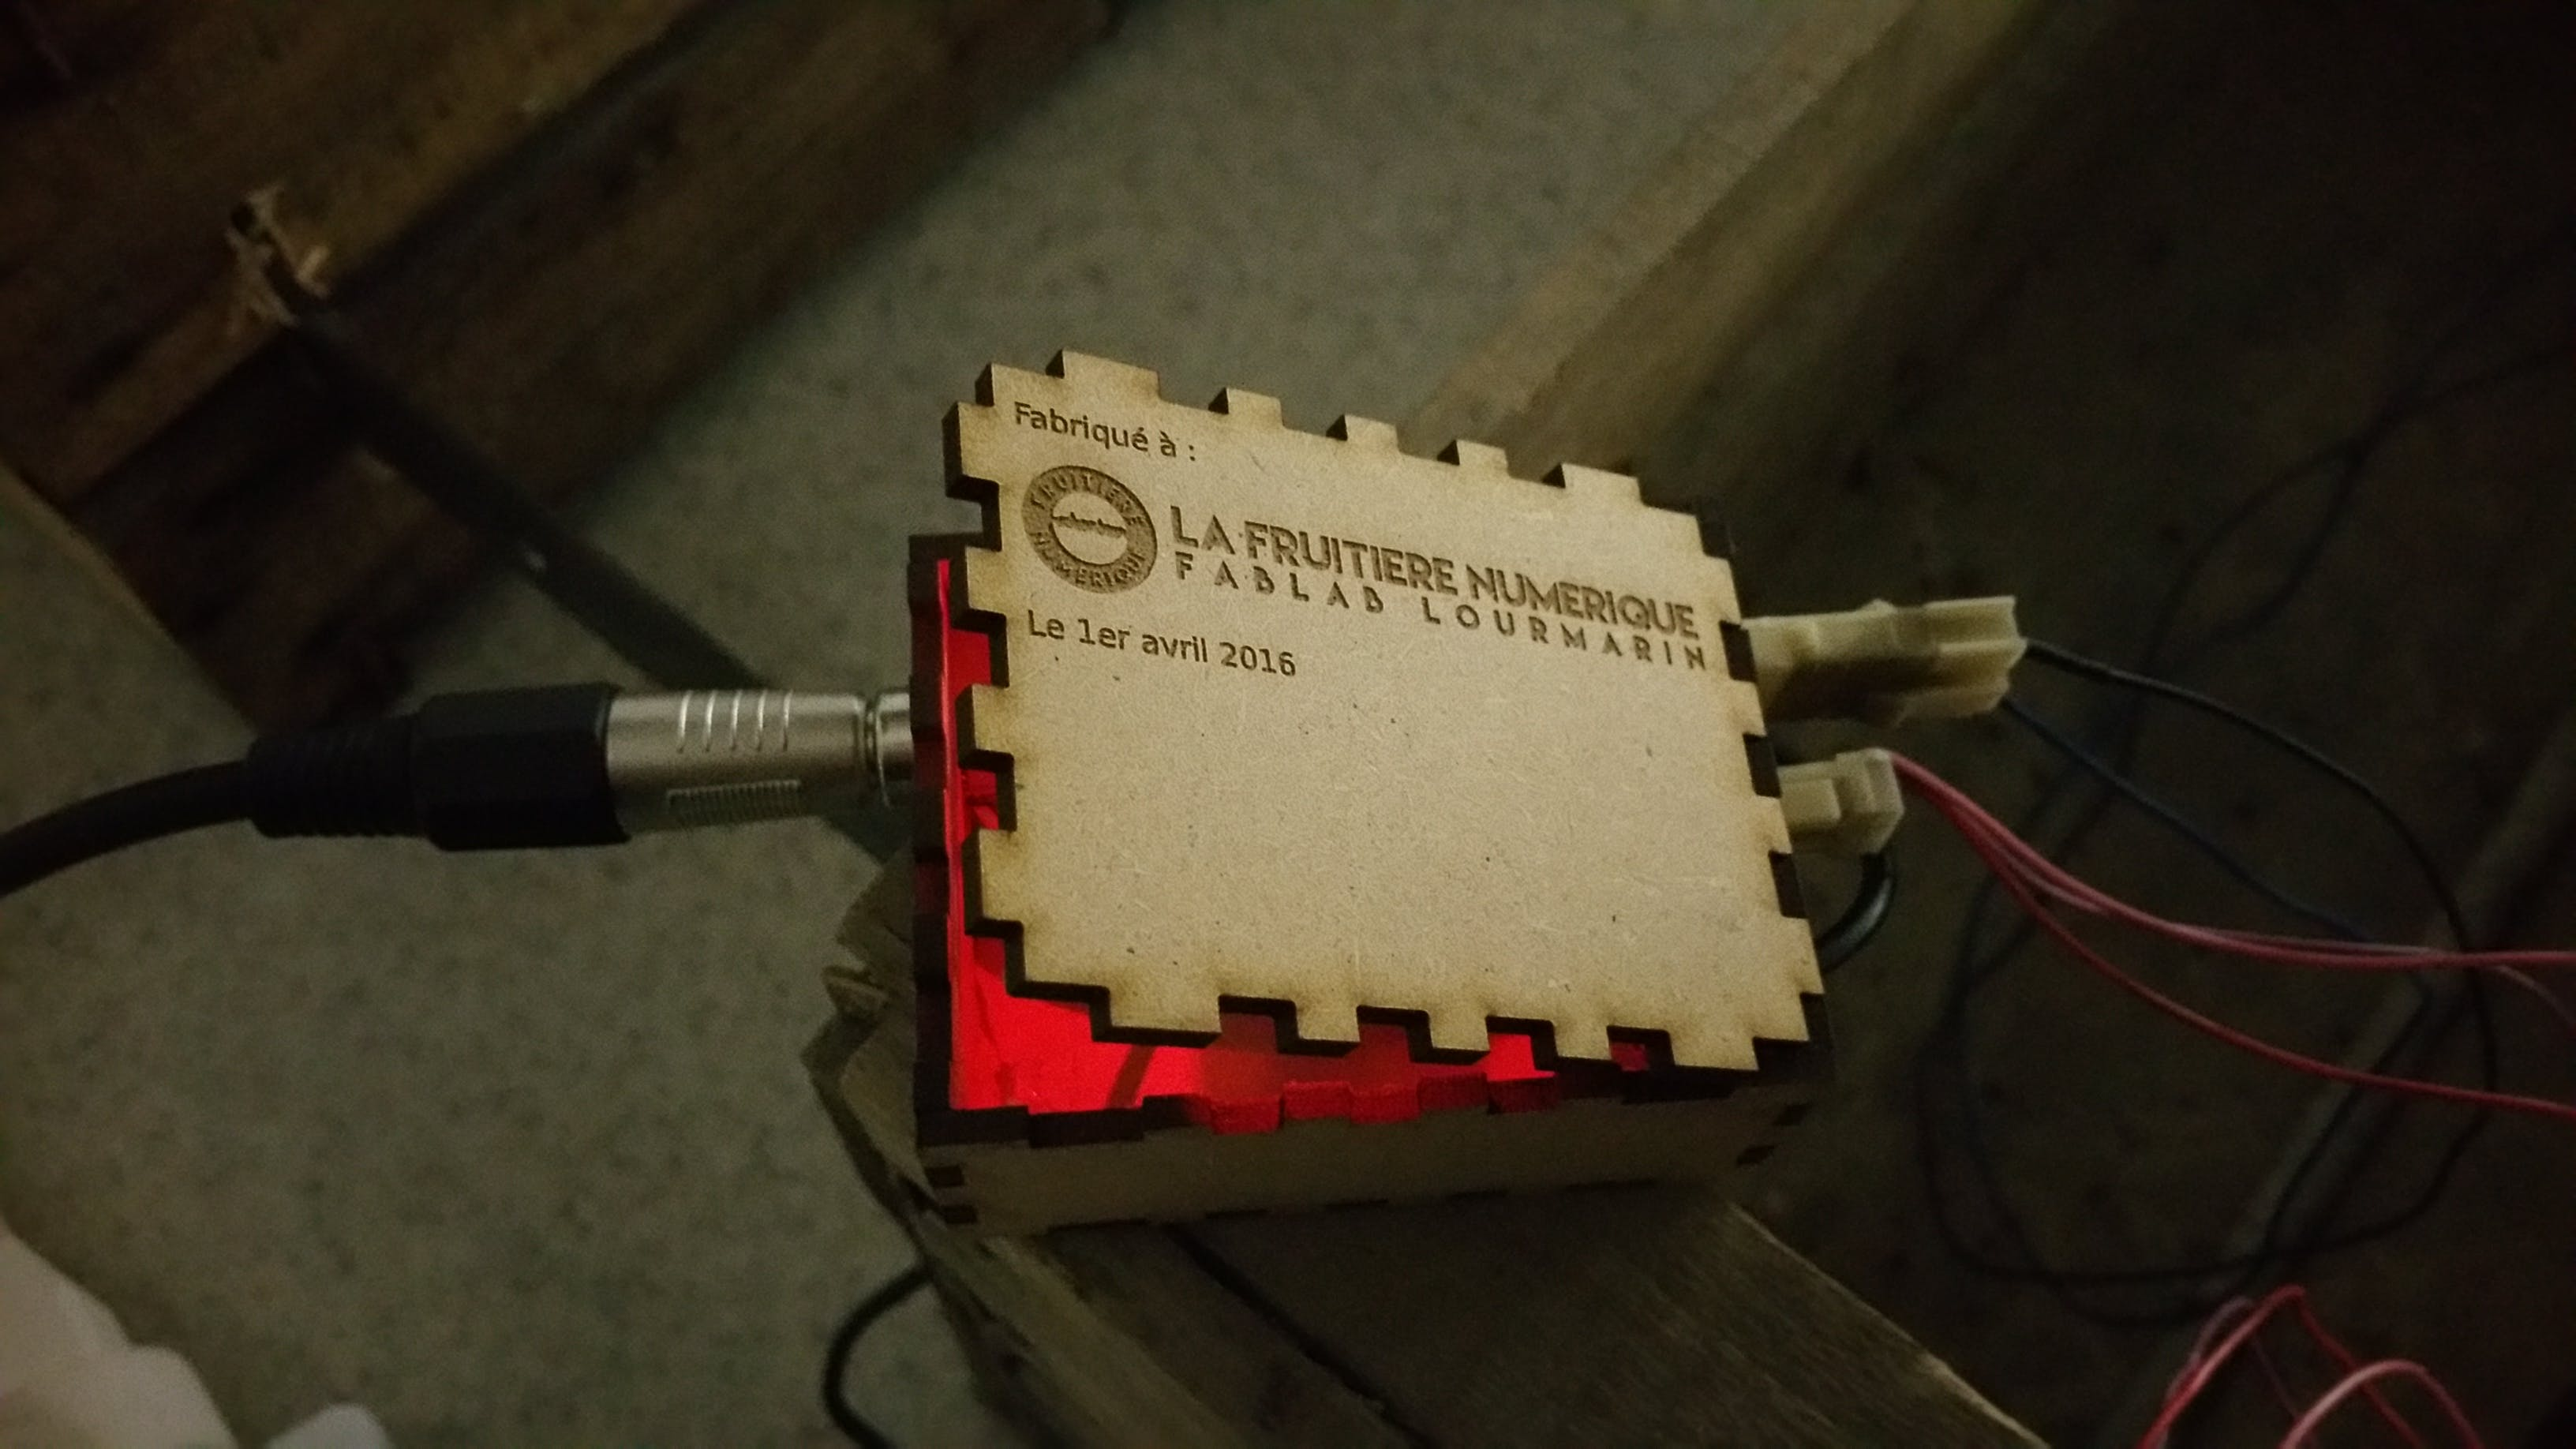 The electronic enclosed in a laser cut box